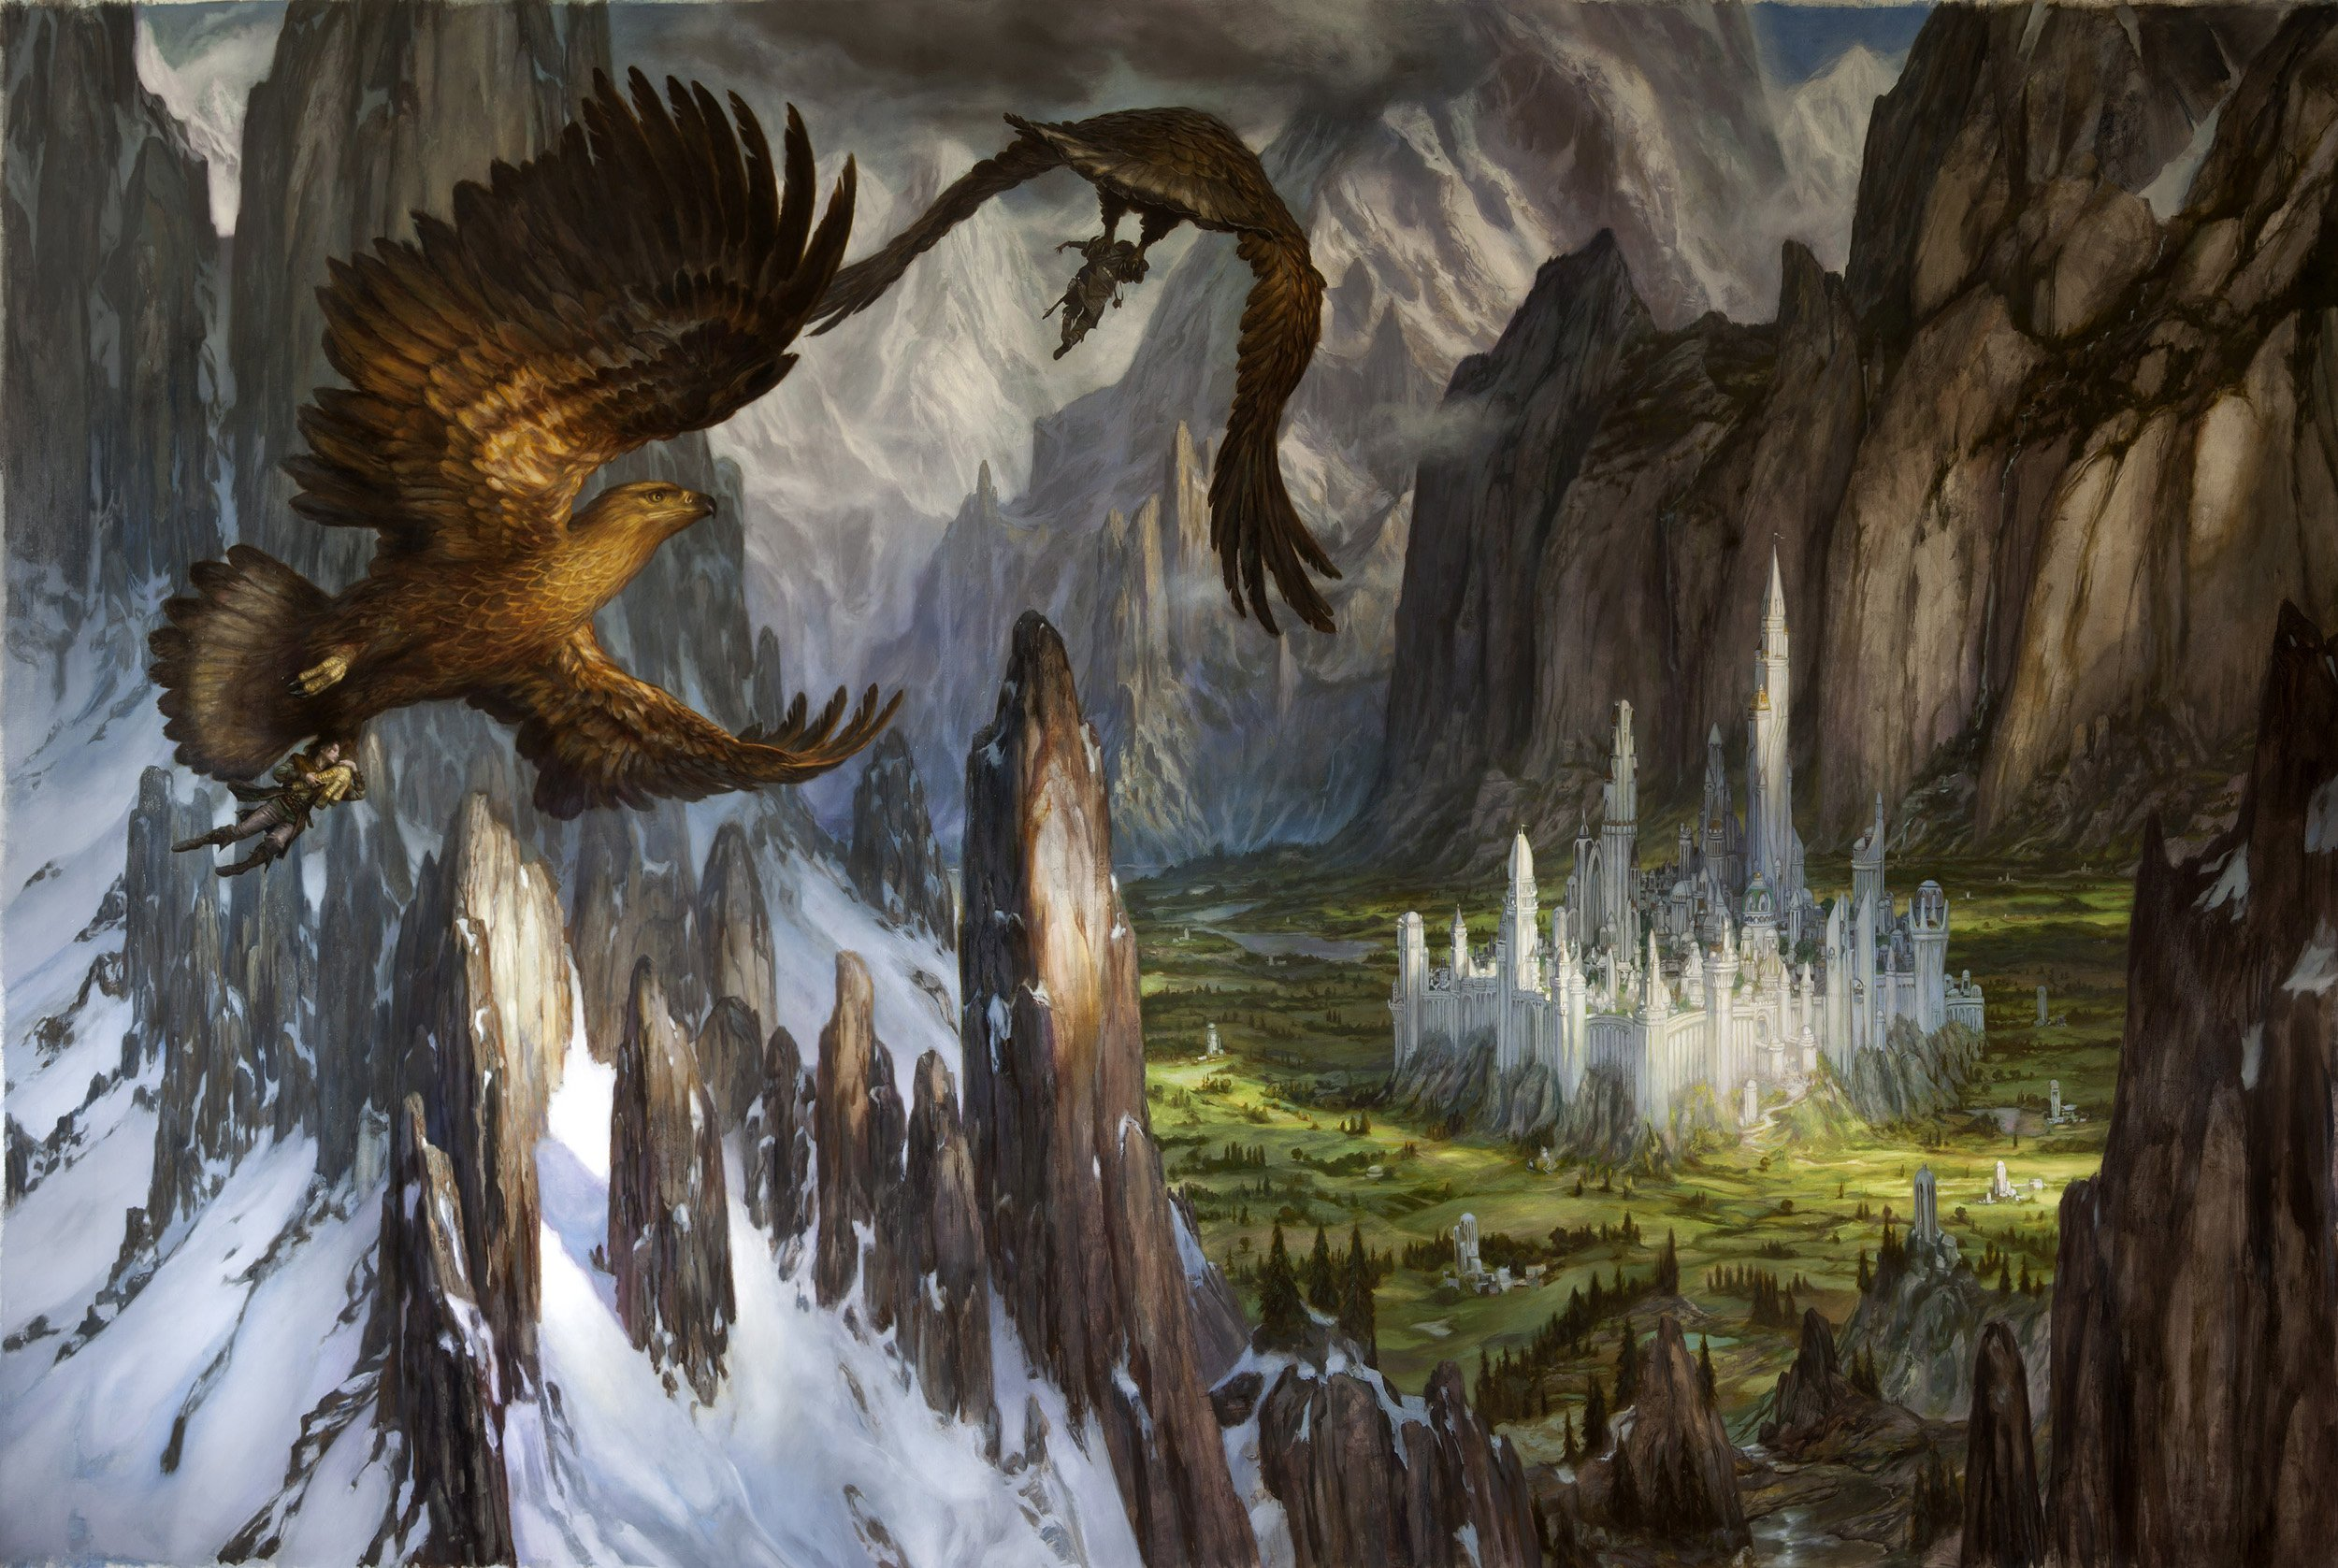 "Huor and Hurin Approaching Gondolin 73"" x 112""  Oil on Linen 2013 Private commission for The Lord of the Rings by J.R.R. Tolkien"